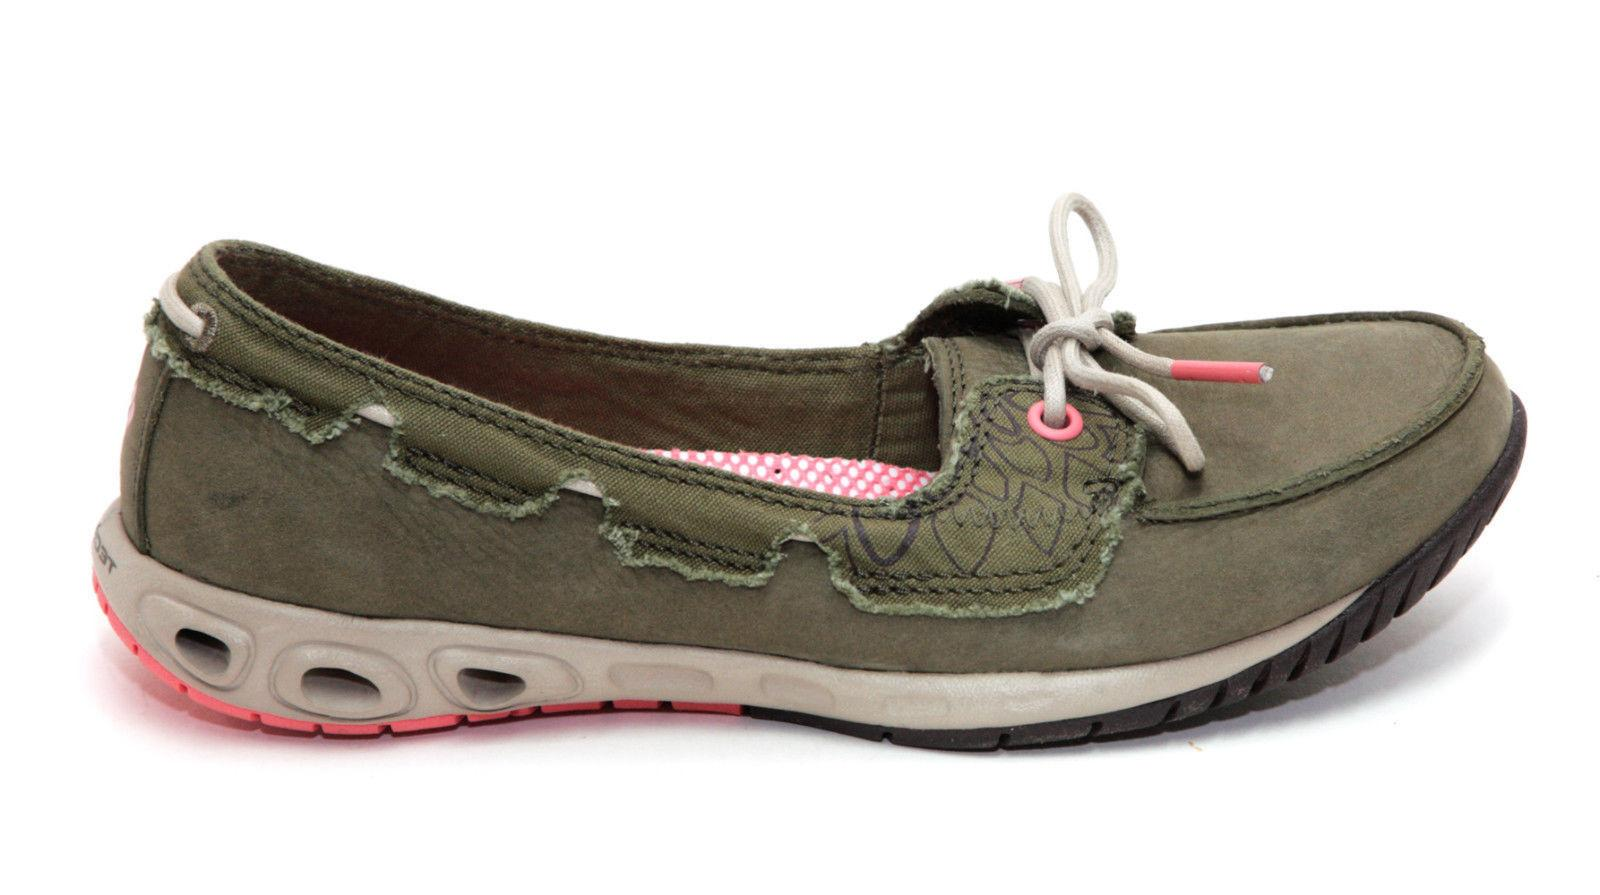 New Womens Athletic Boat Shoes